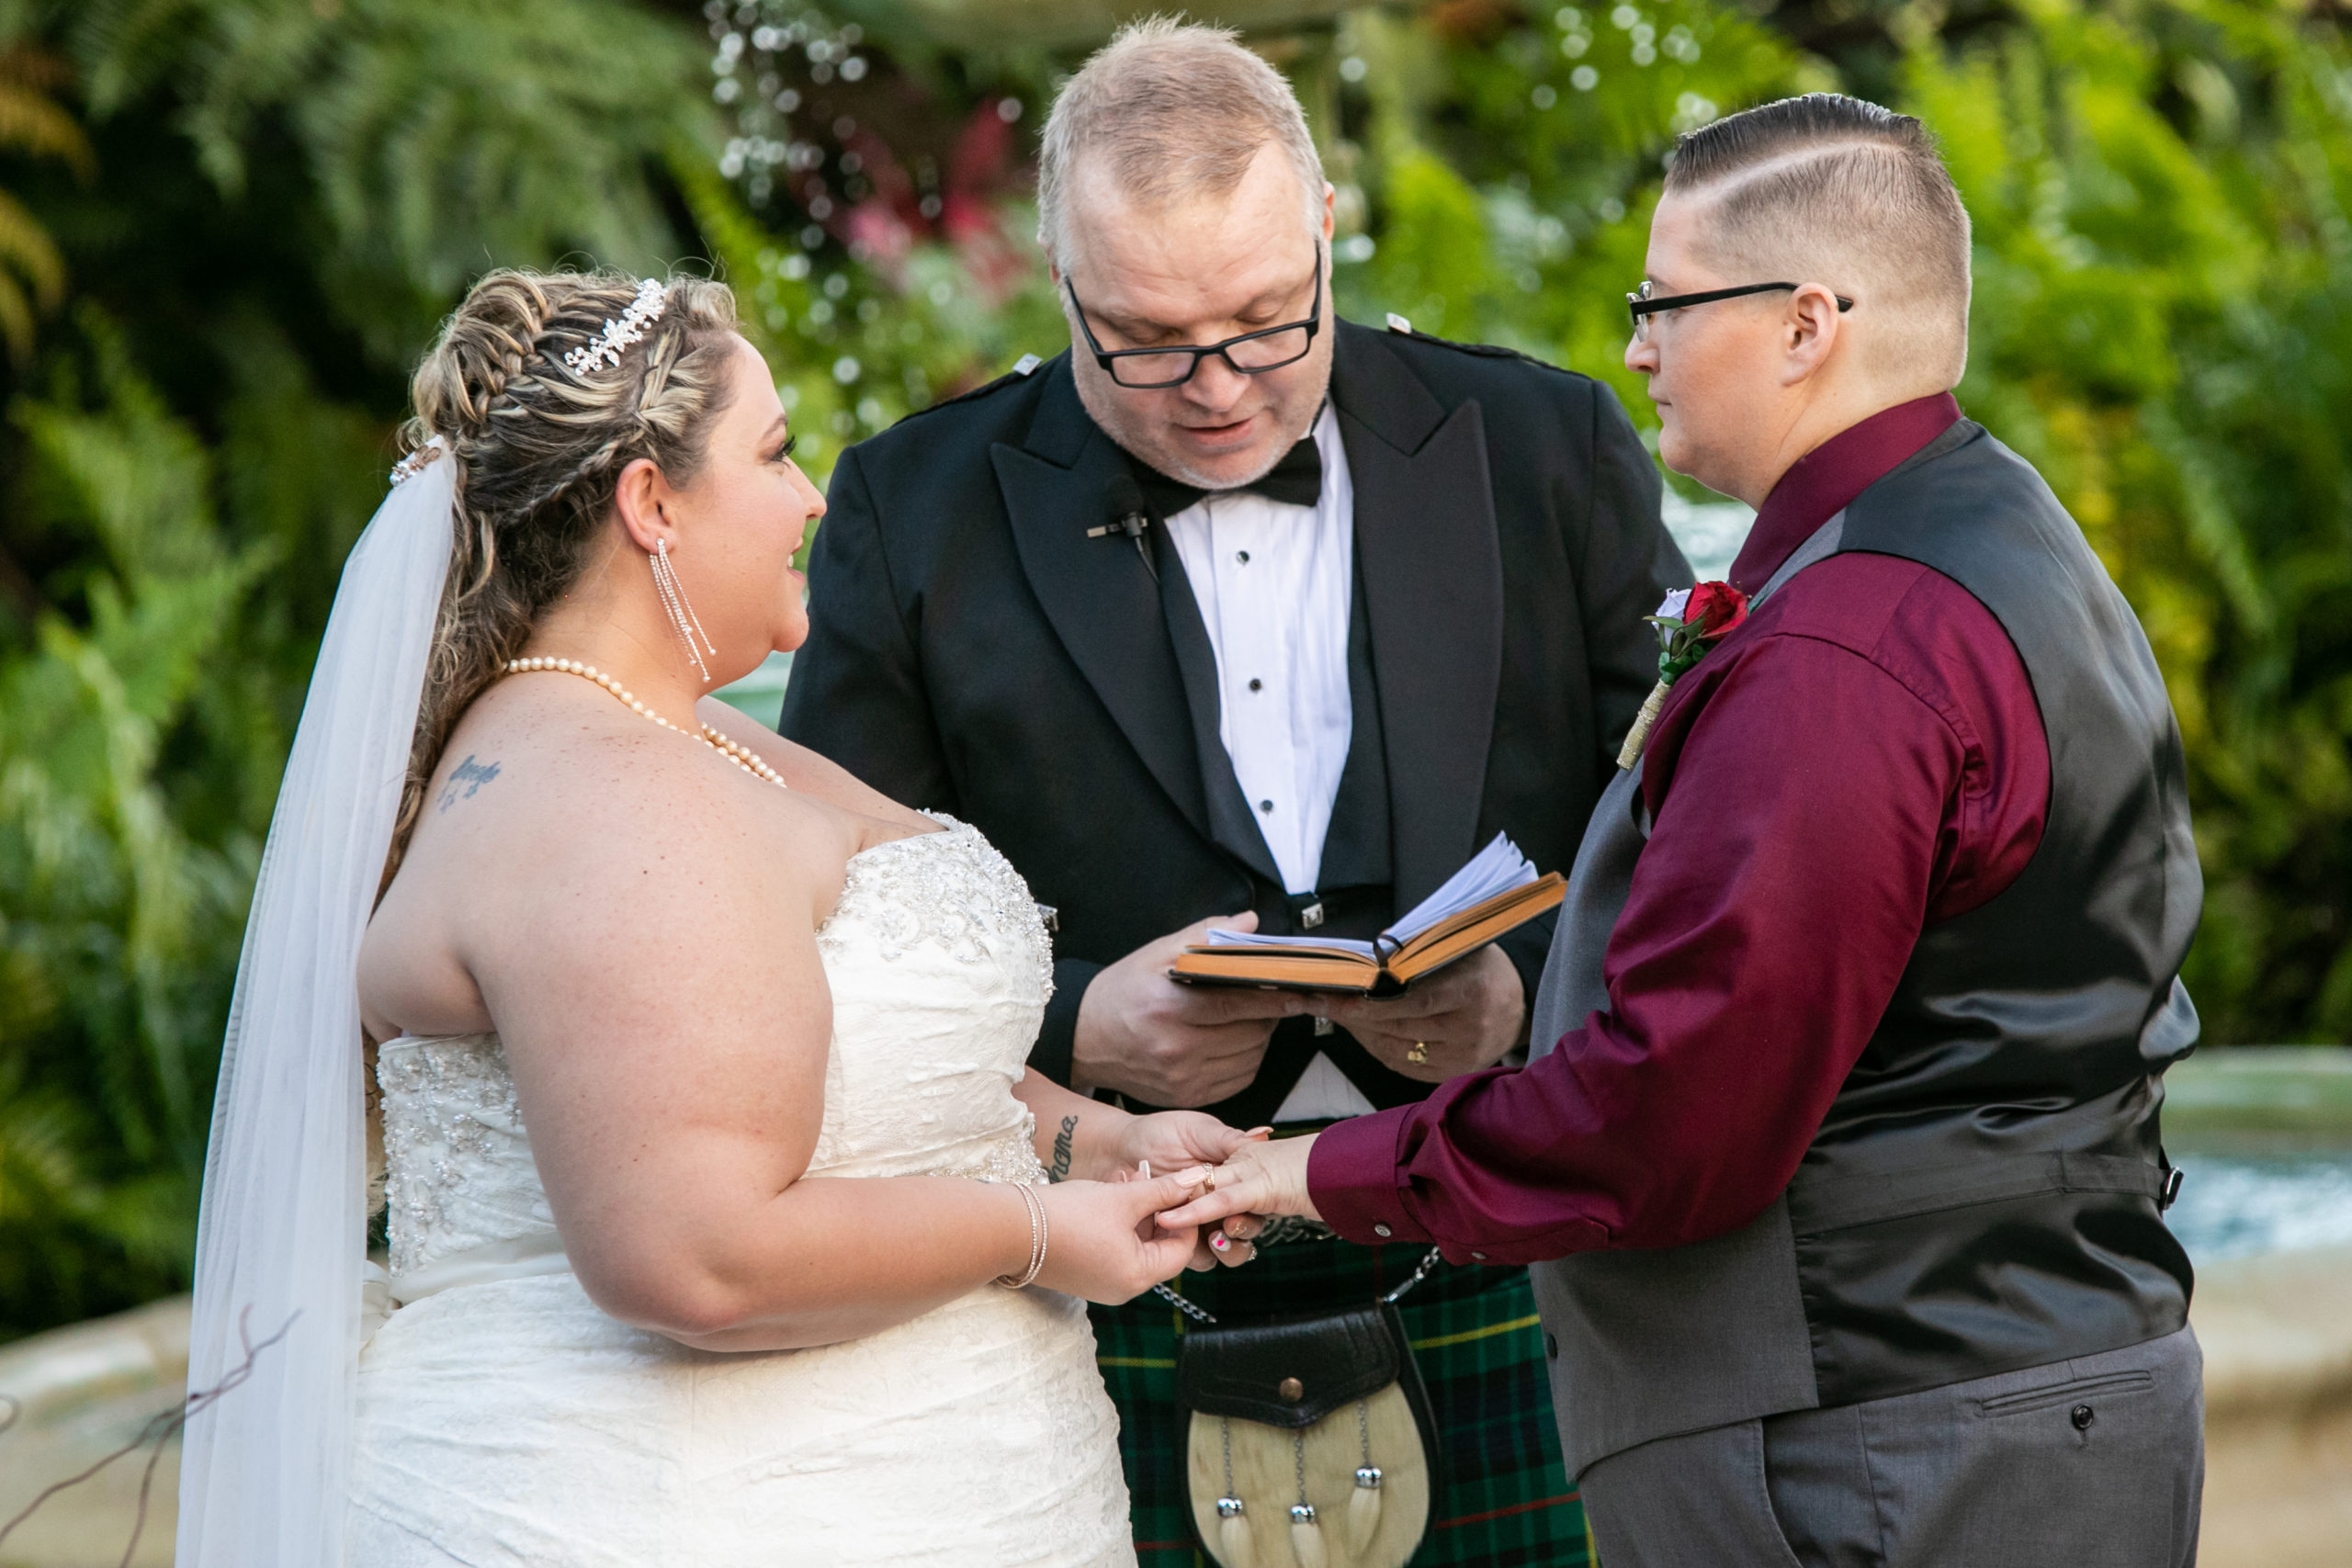 Officiant presiding over wedding with two brides